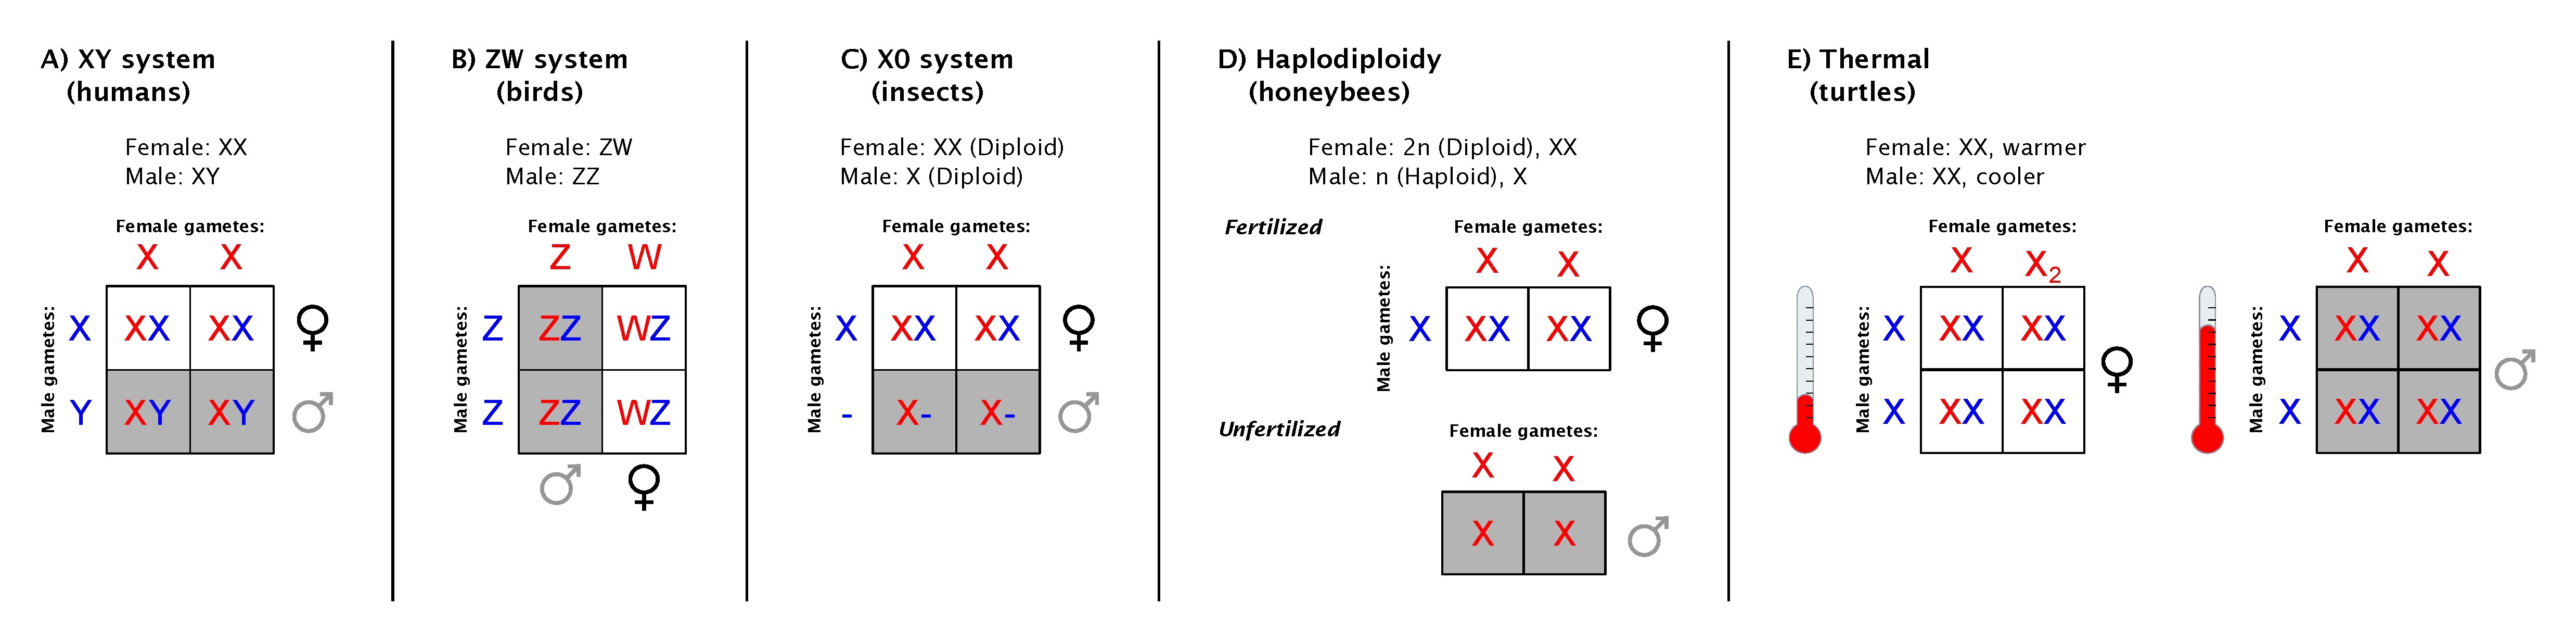 environmental sex determination in birds